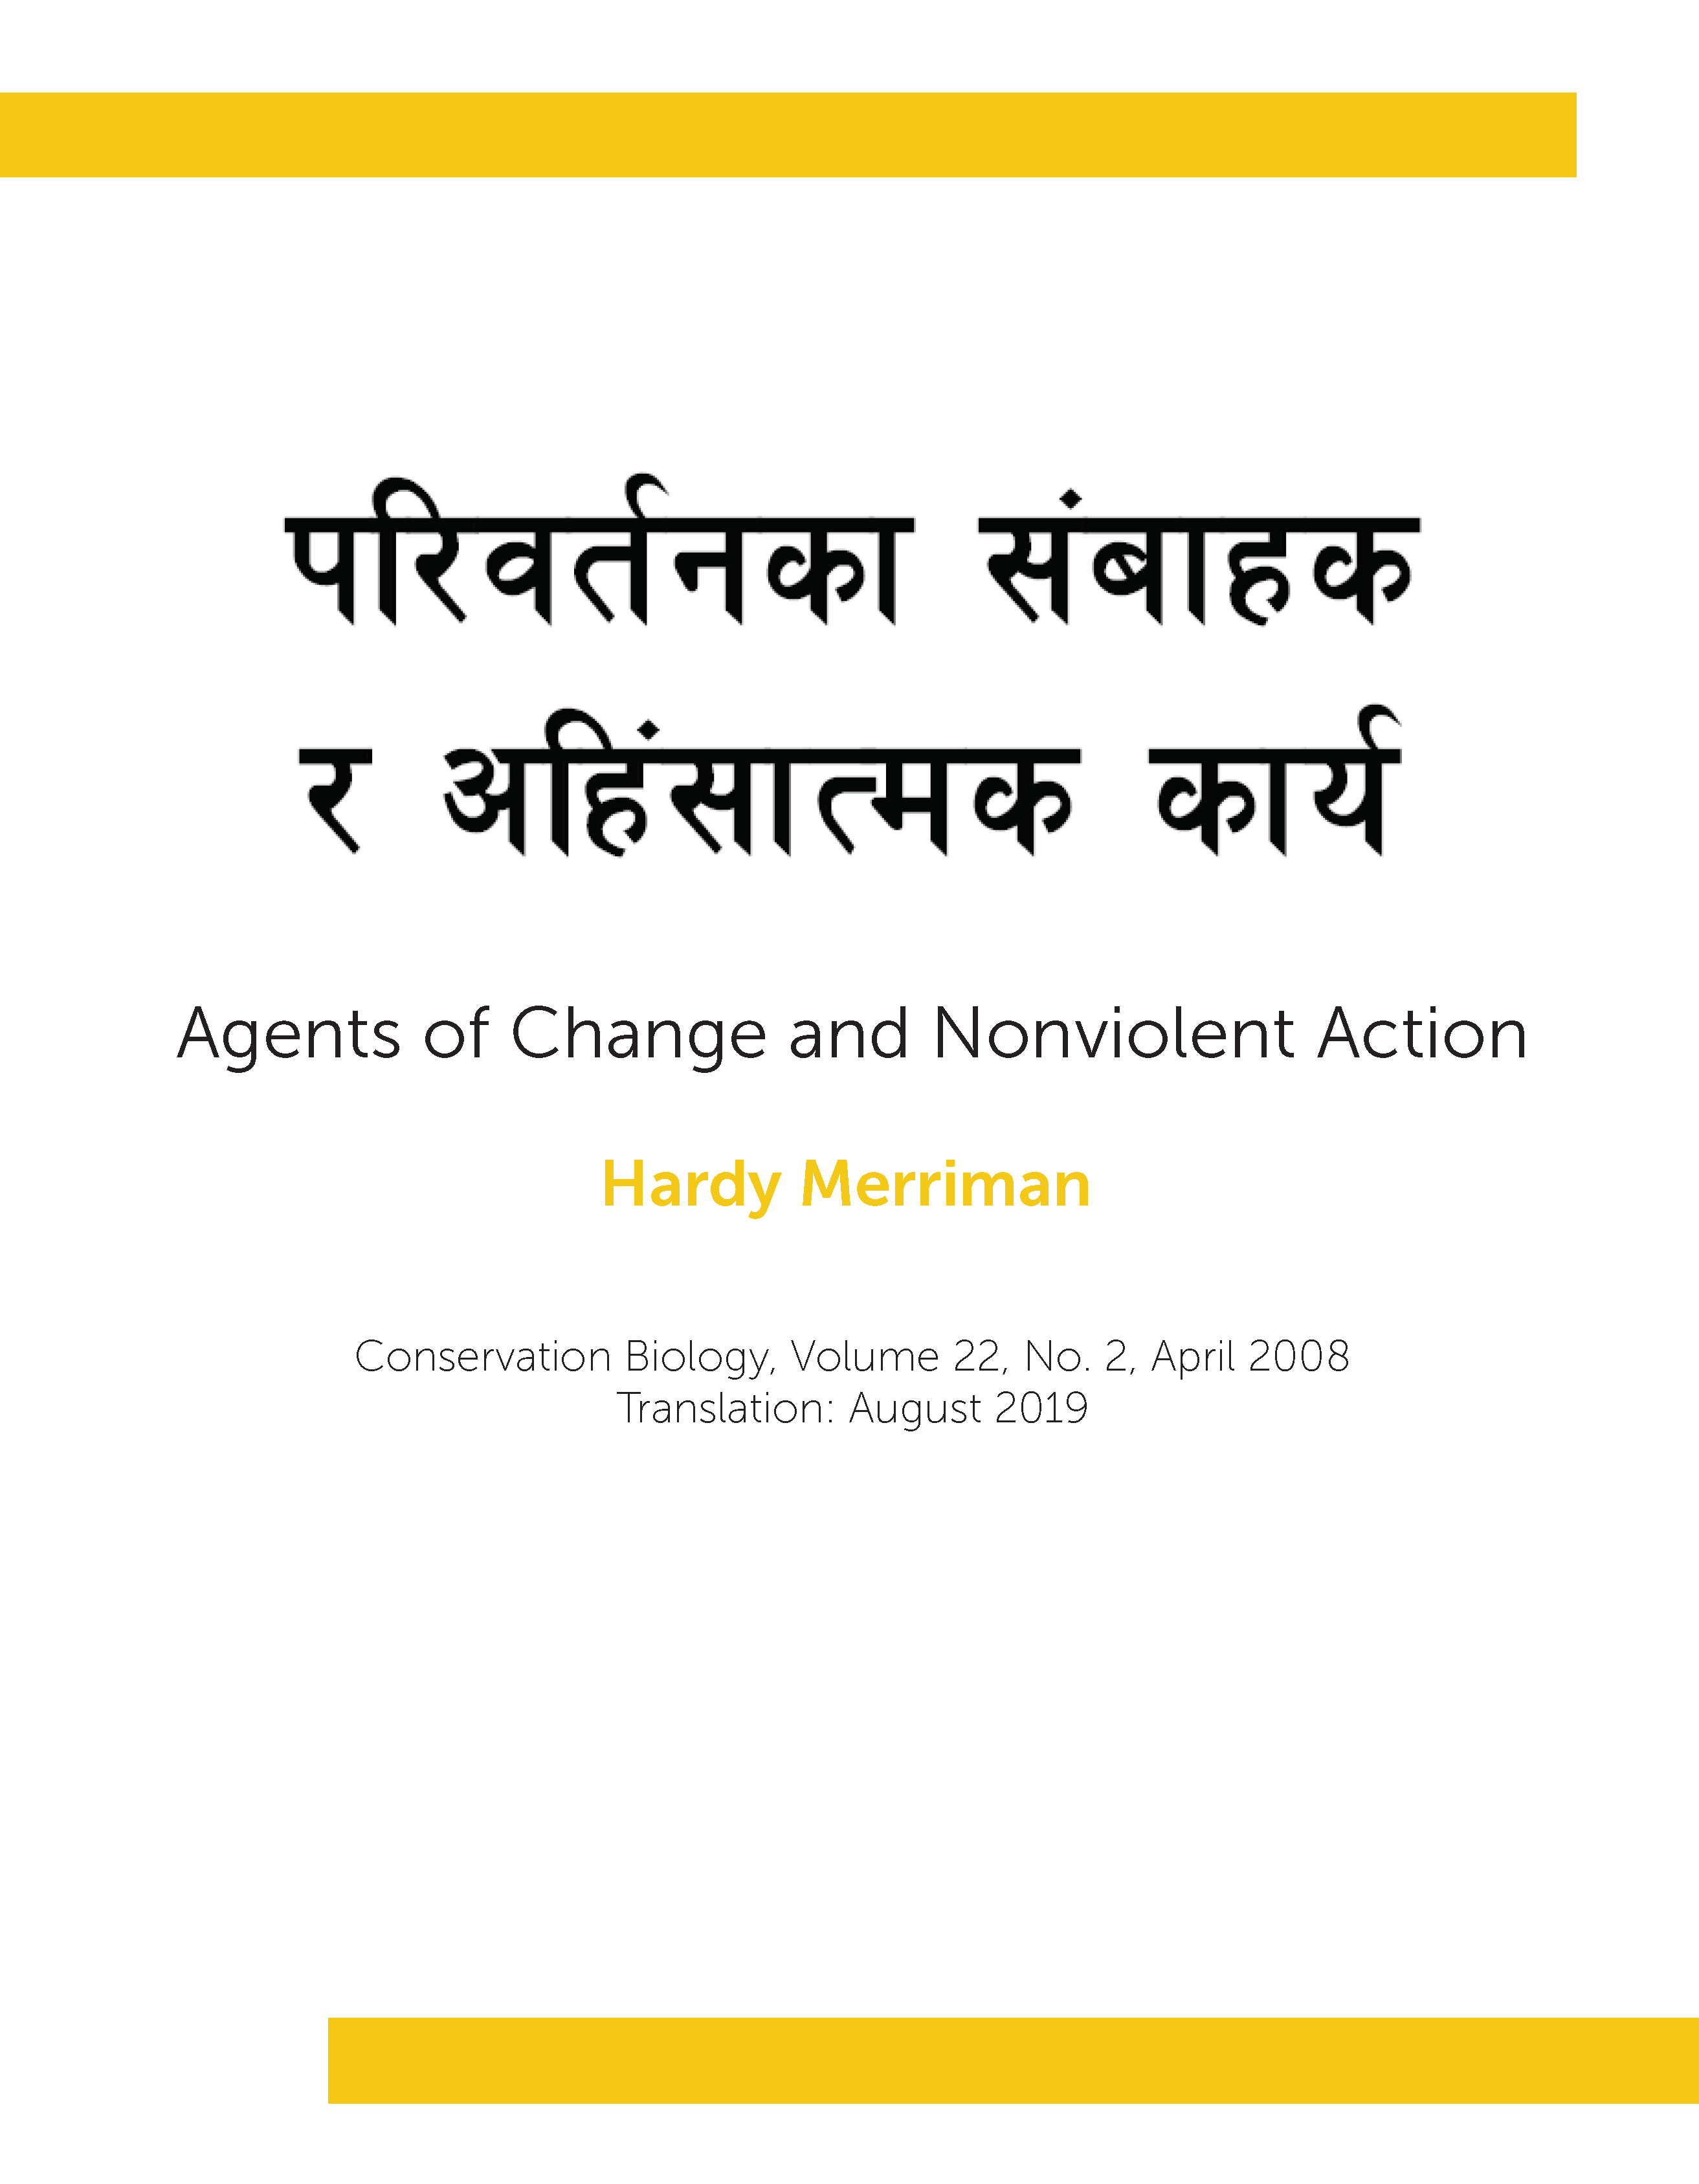 Agents of Change and Nonviolent Action (Nepali)